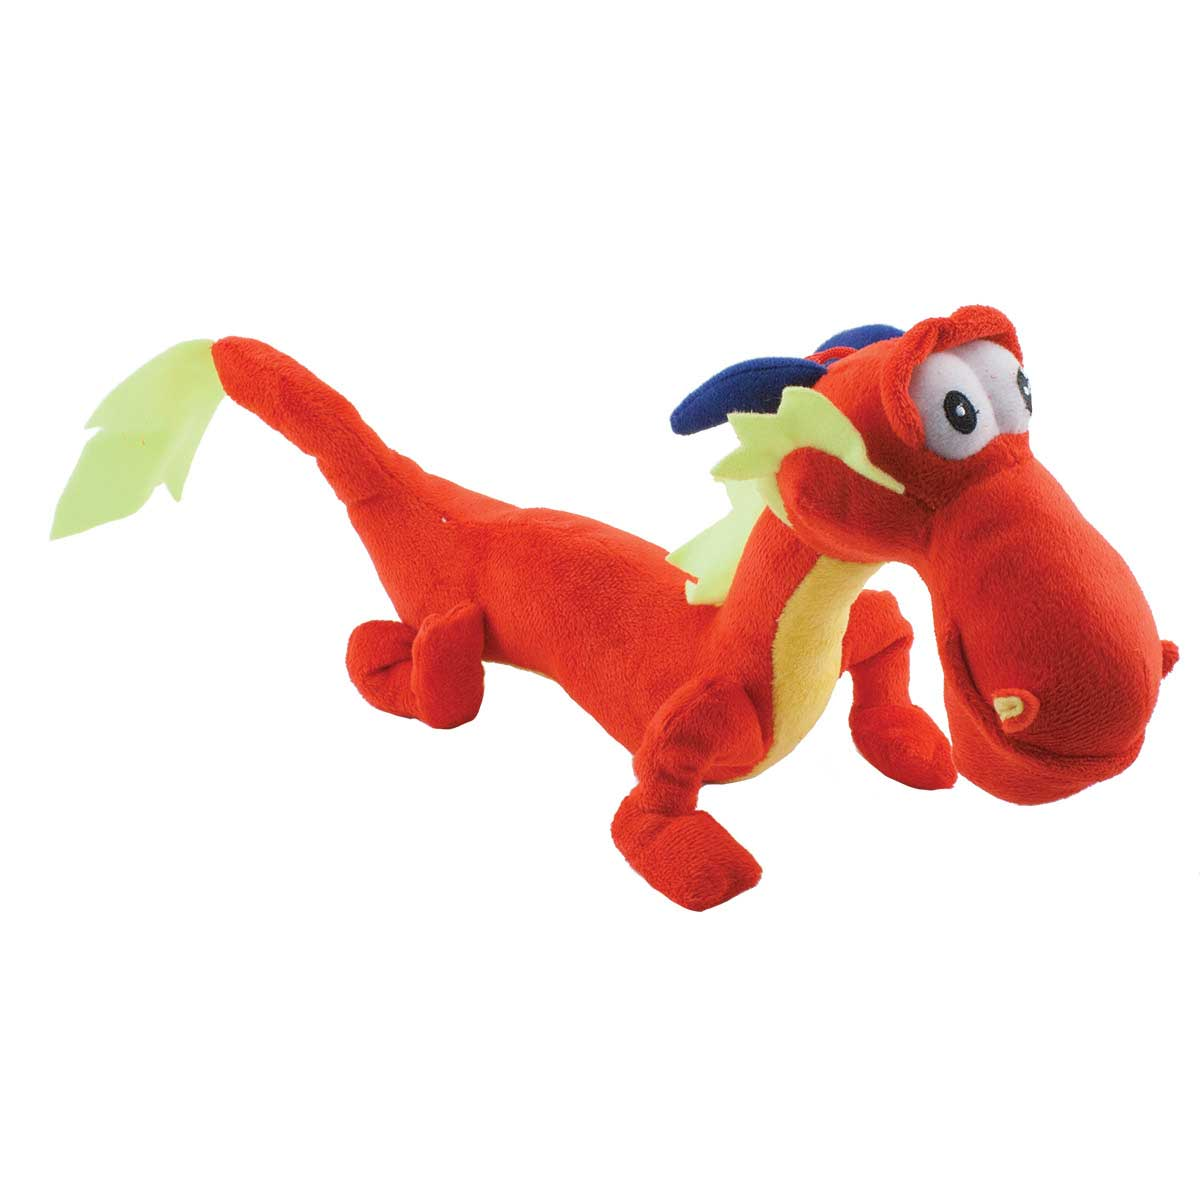 10 inch Dawgeee Toy Dragon for Dogs